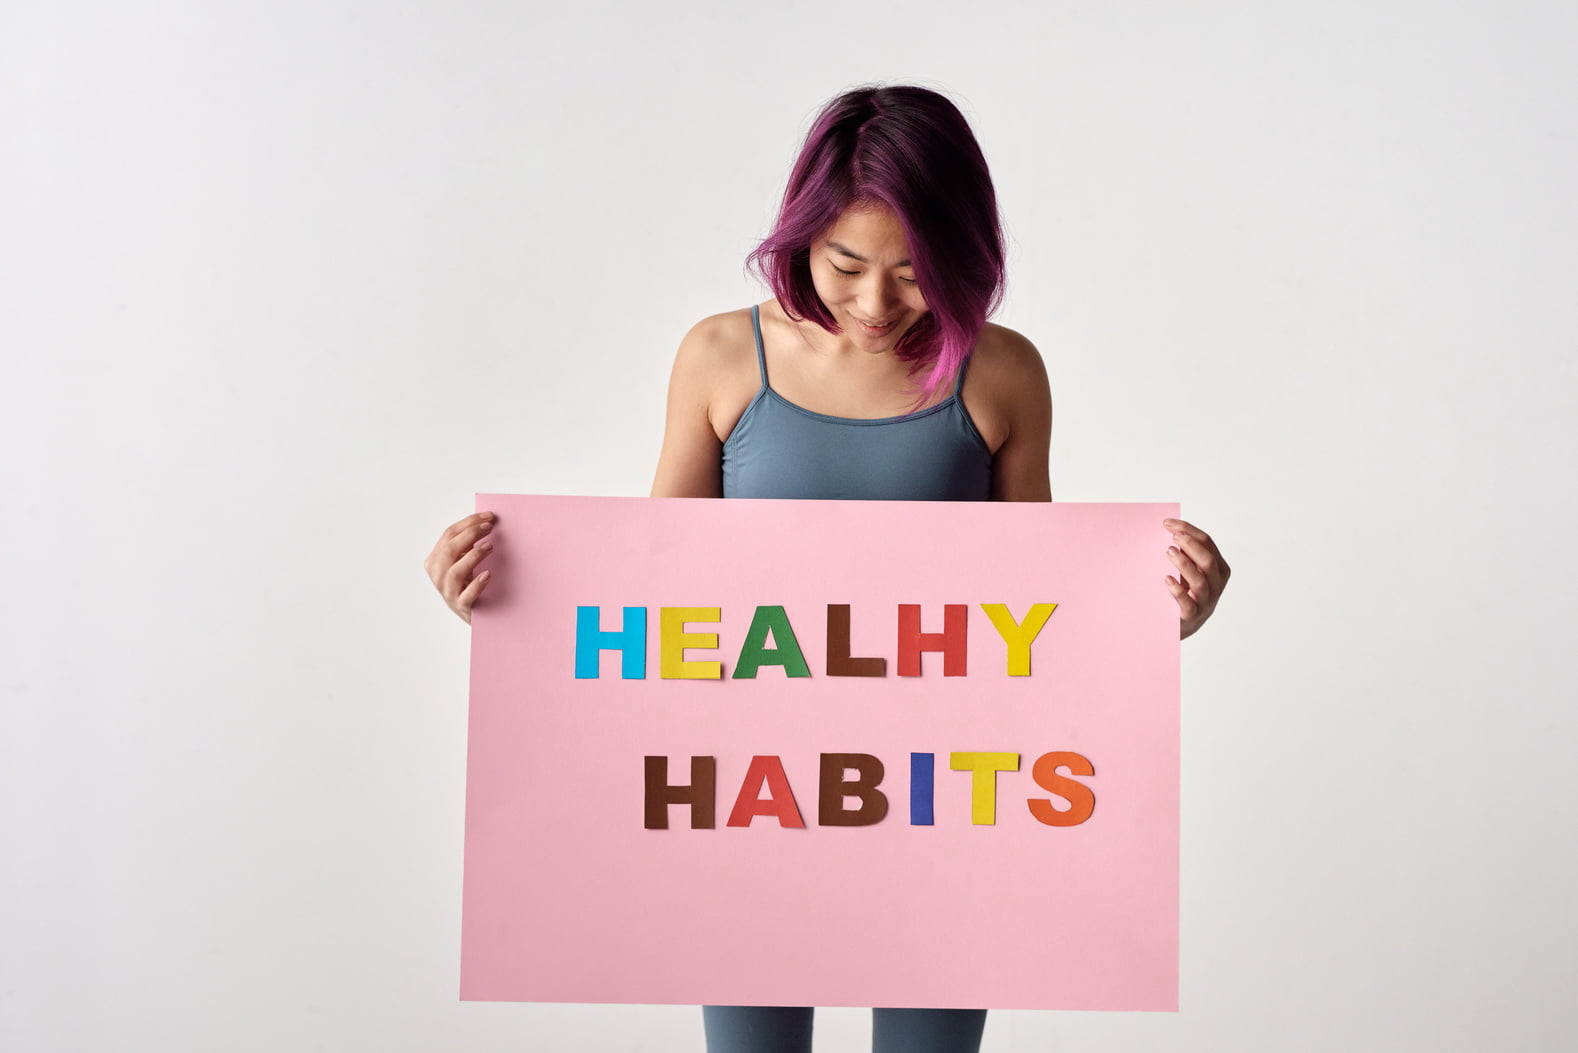 Healthy Habits: How to Get on the Right Track